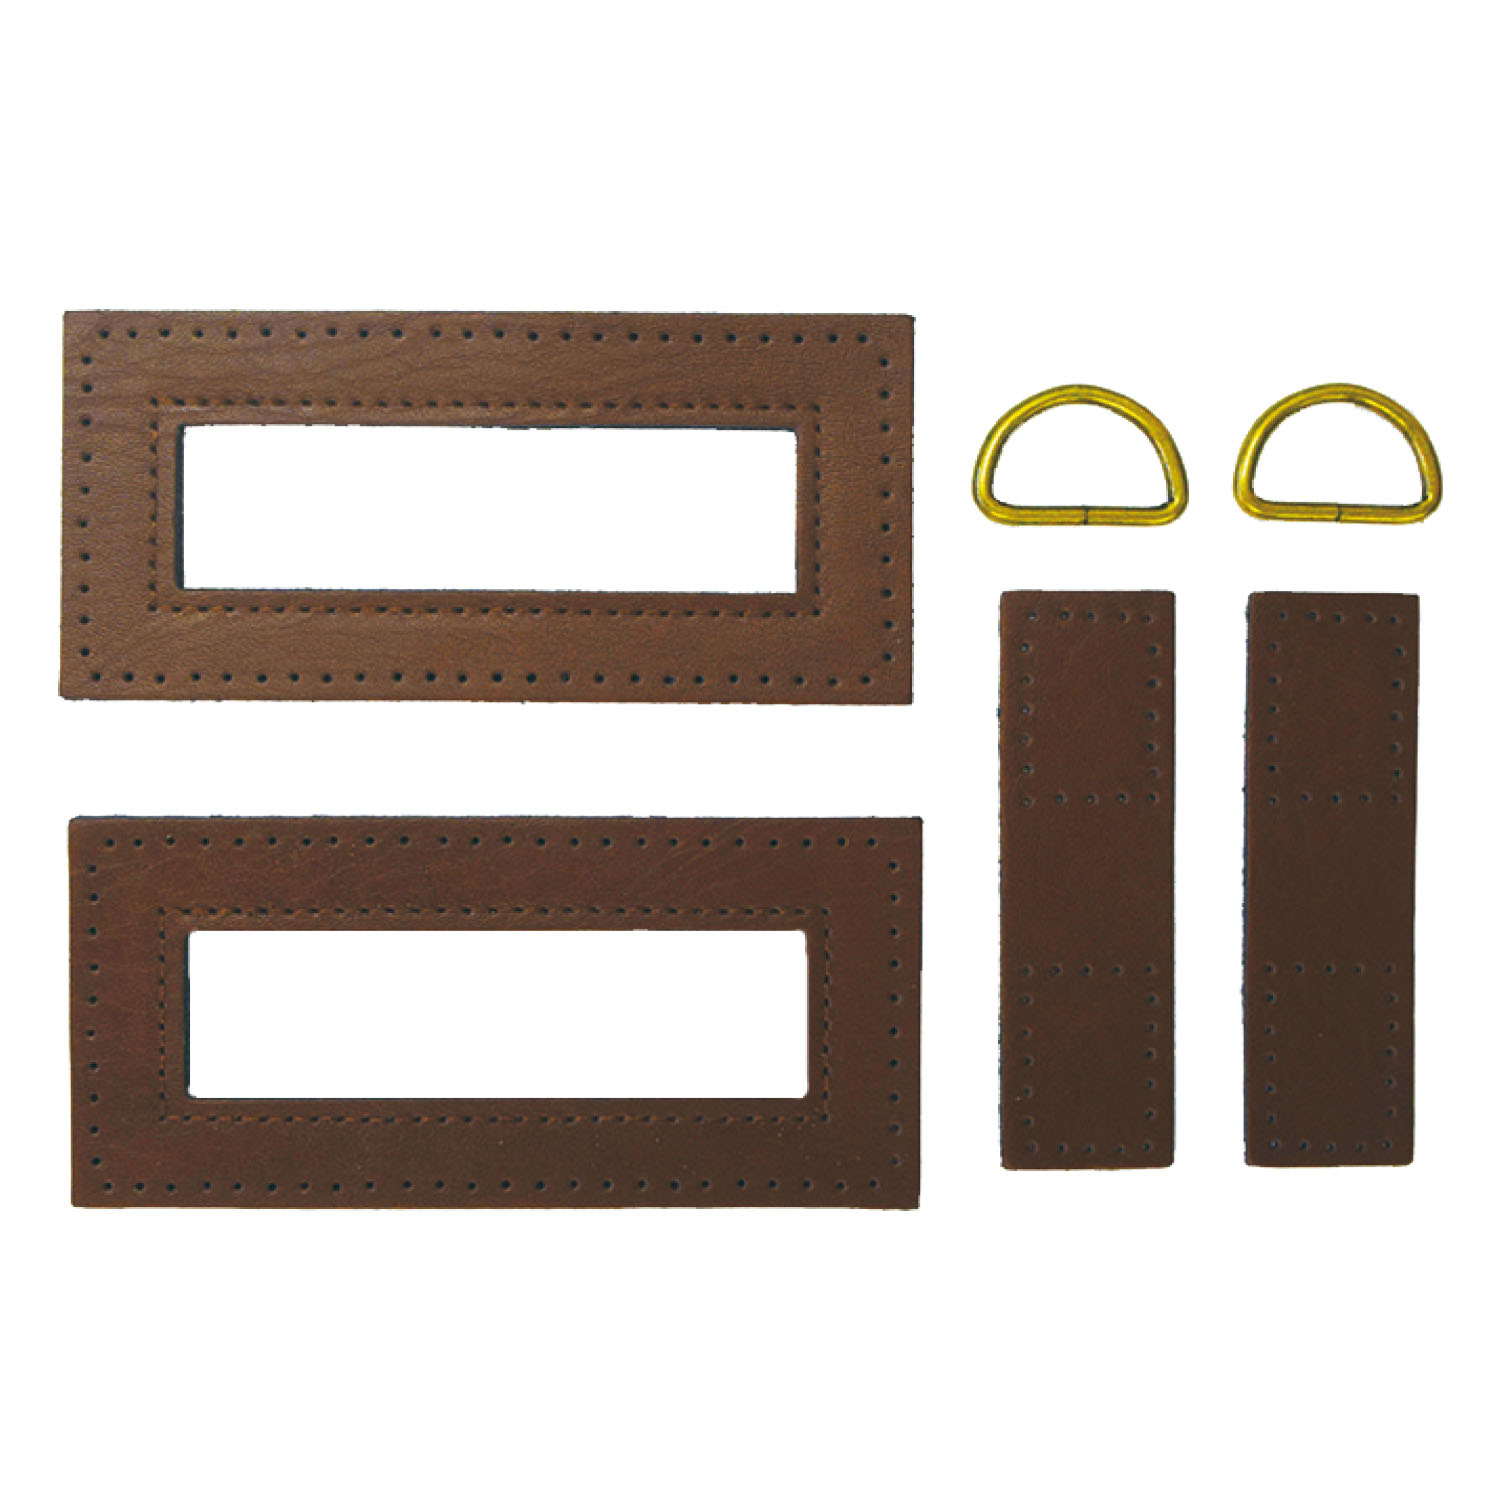 cluch_handle_set_square_br.jpg